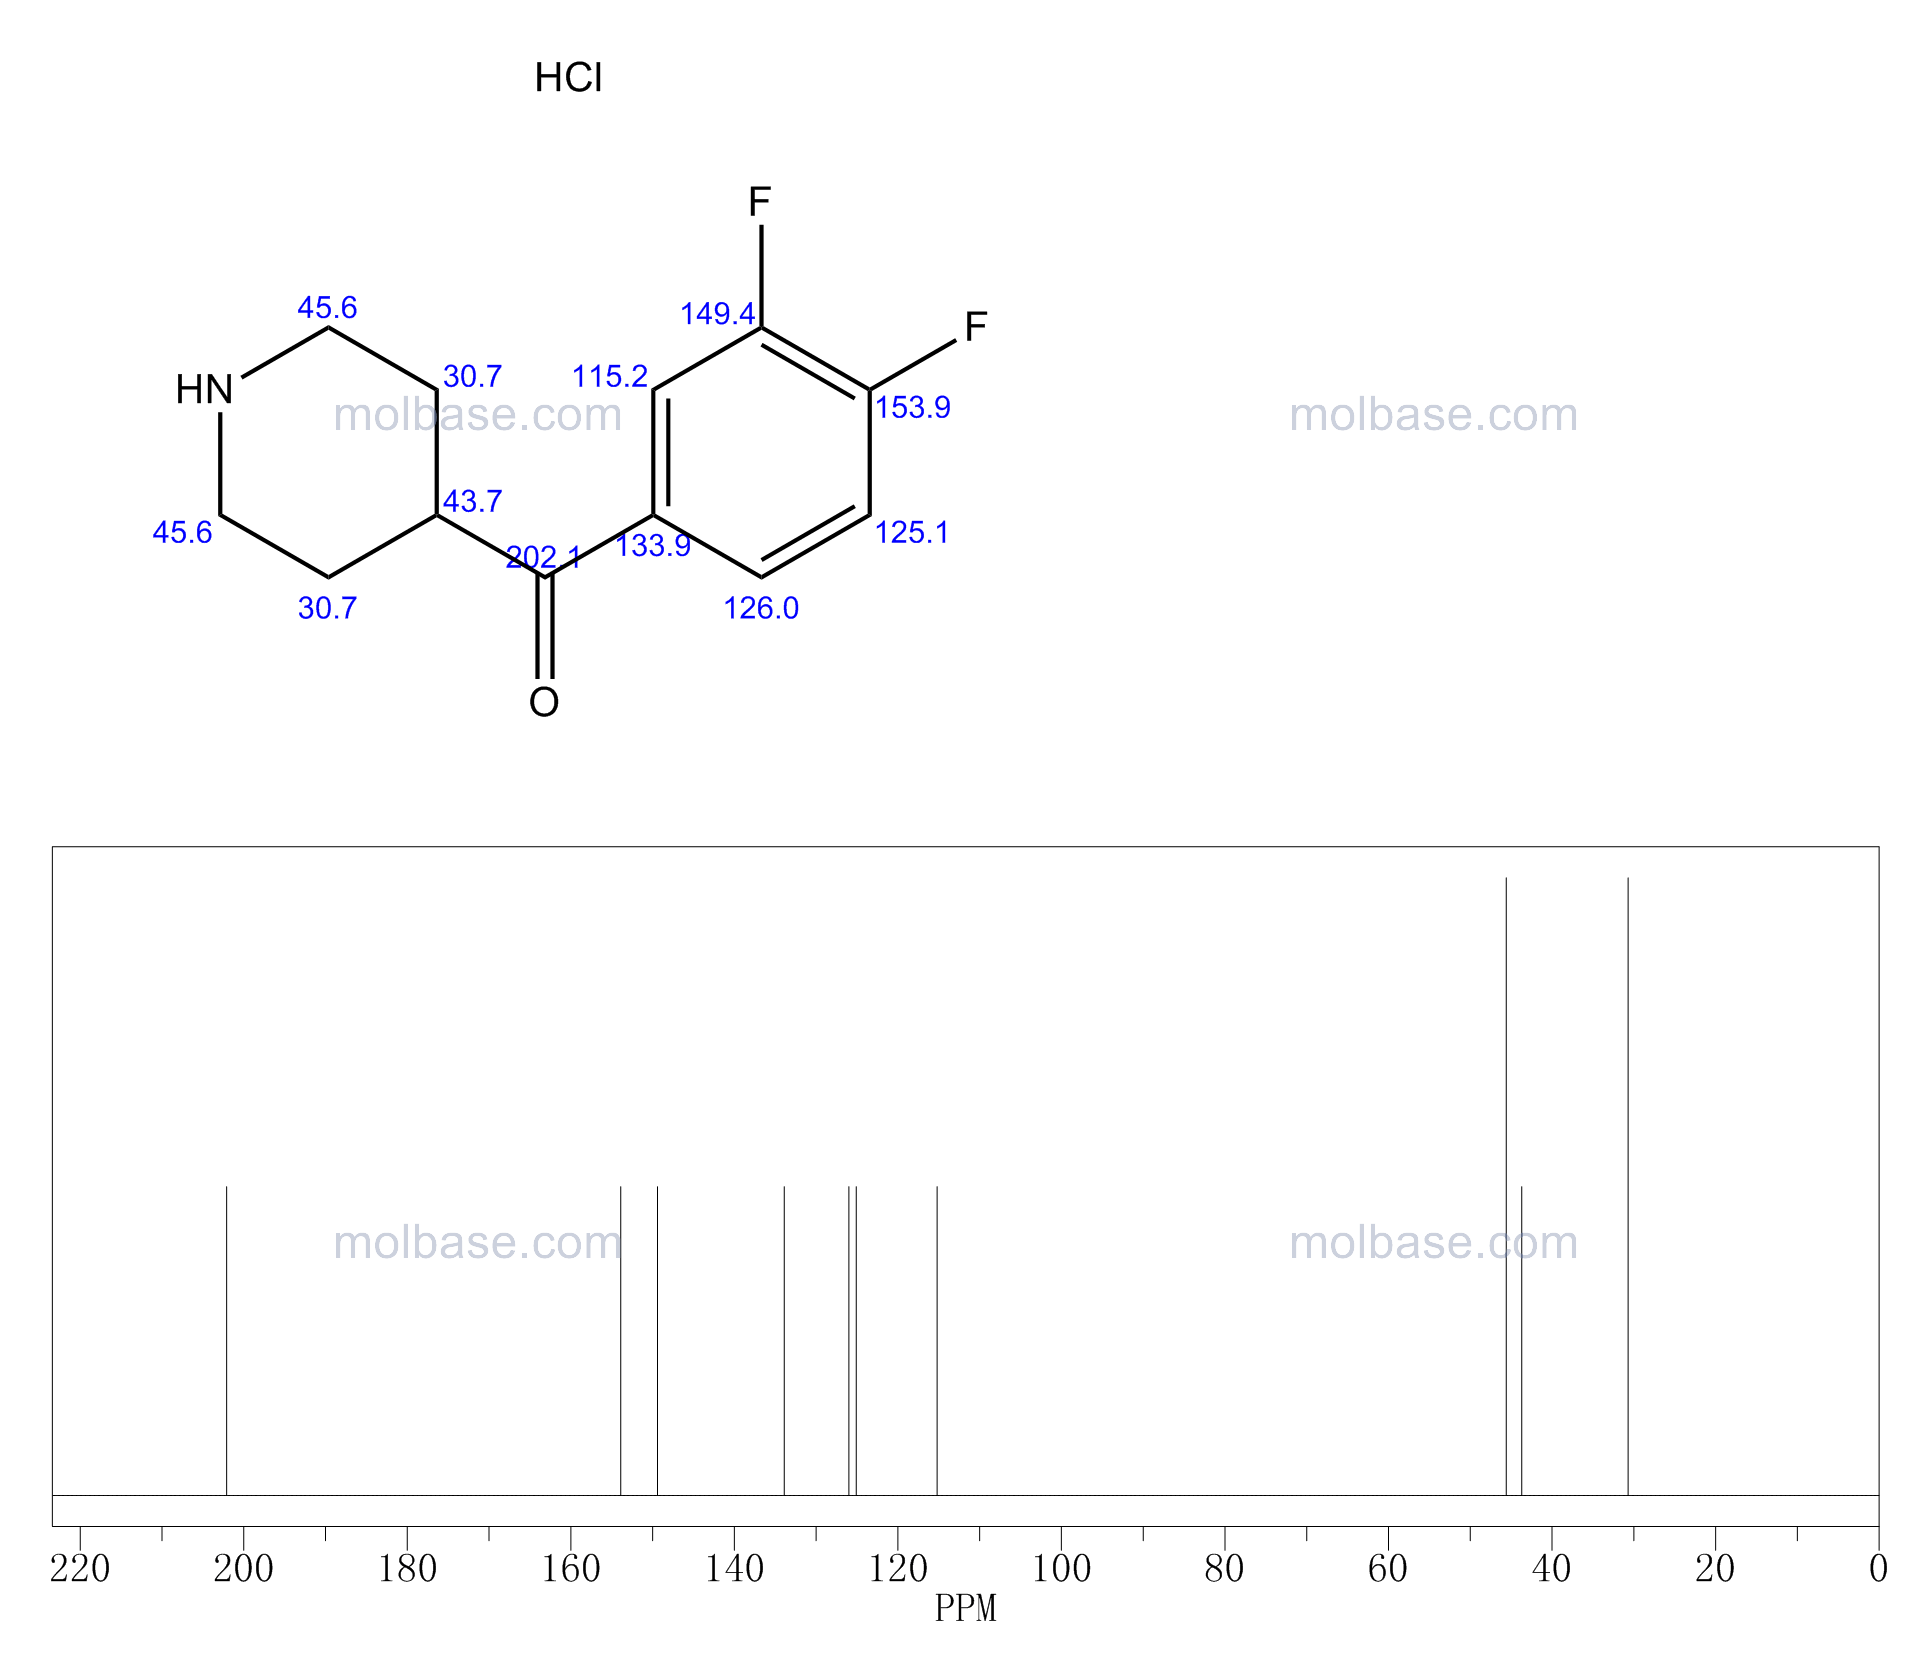 (3,4-difluorophenyl)-piperidin-4-ylmethanone,hydrochloride NMR spectra analysis, Chemical CAS NO. 140235-26-3 NMR spectral analysis, (3,4-difluorophenyl)-piperidin-4-ylmethanone,hydrochloride C-NMR spectrum